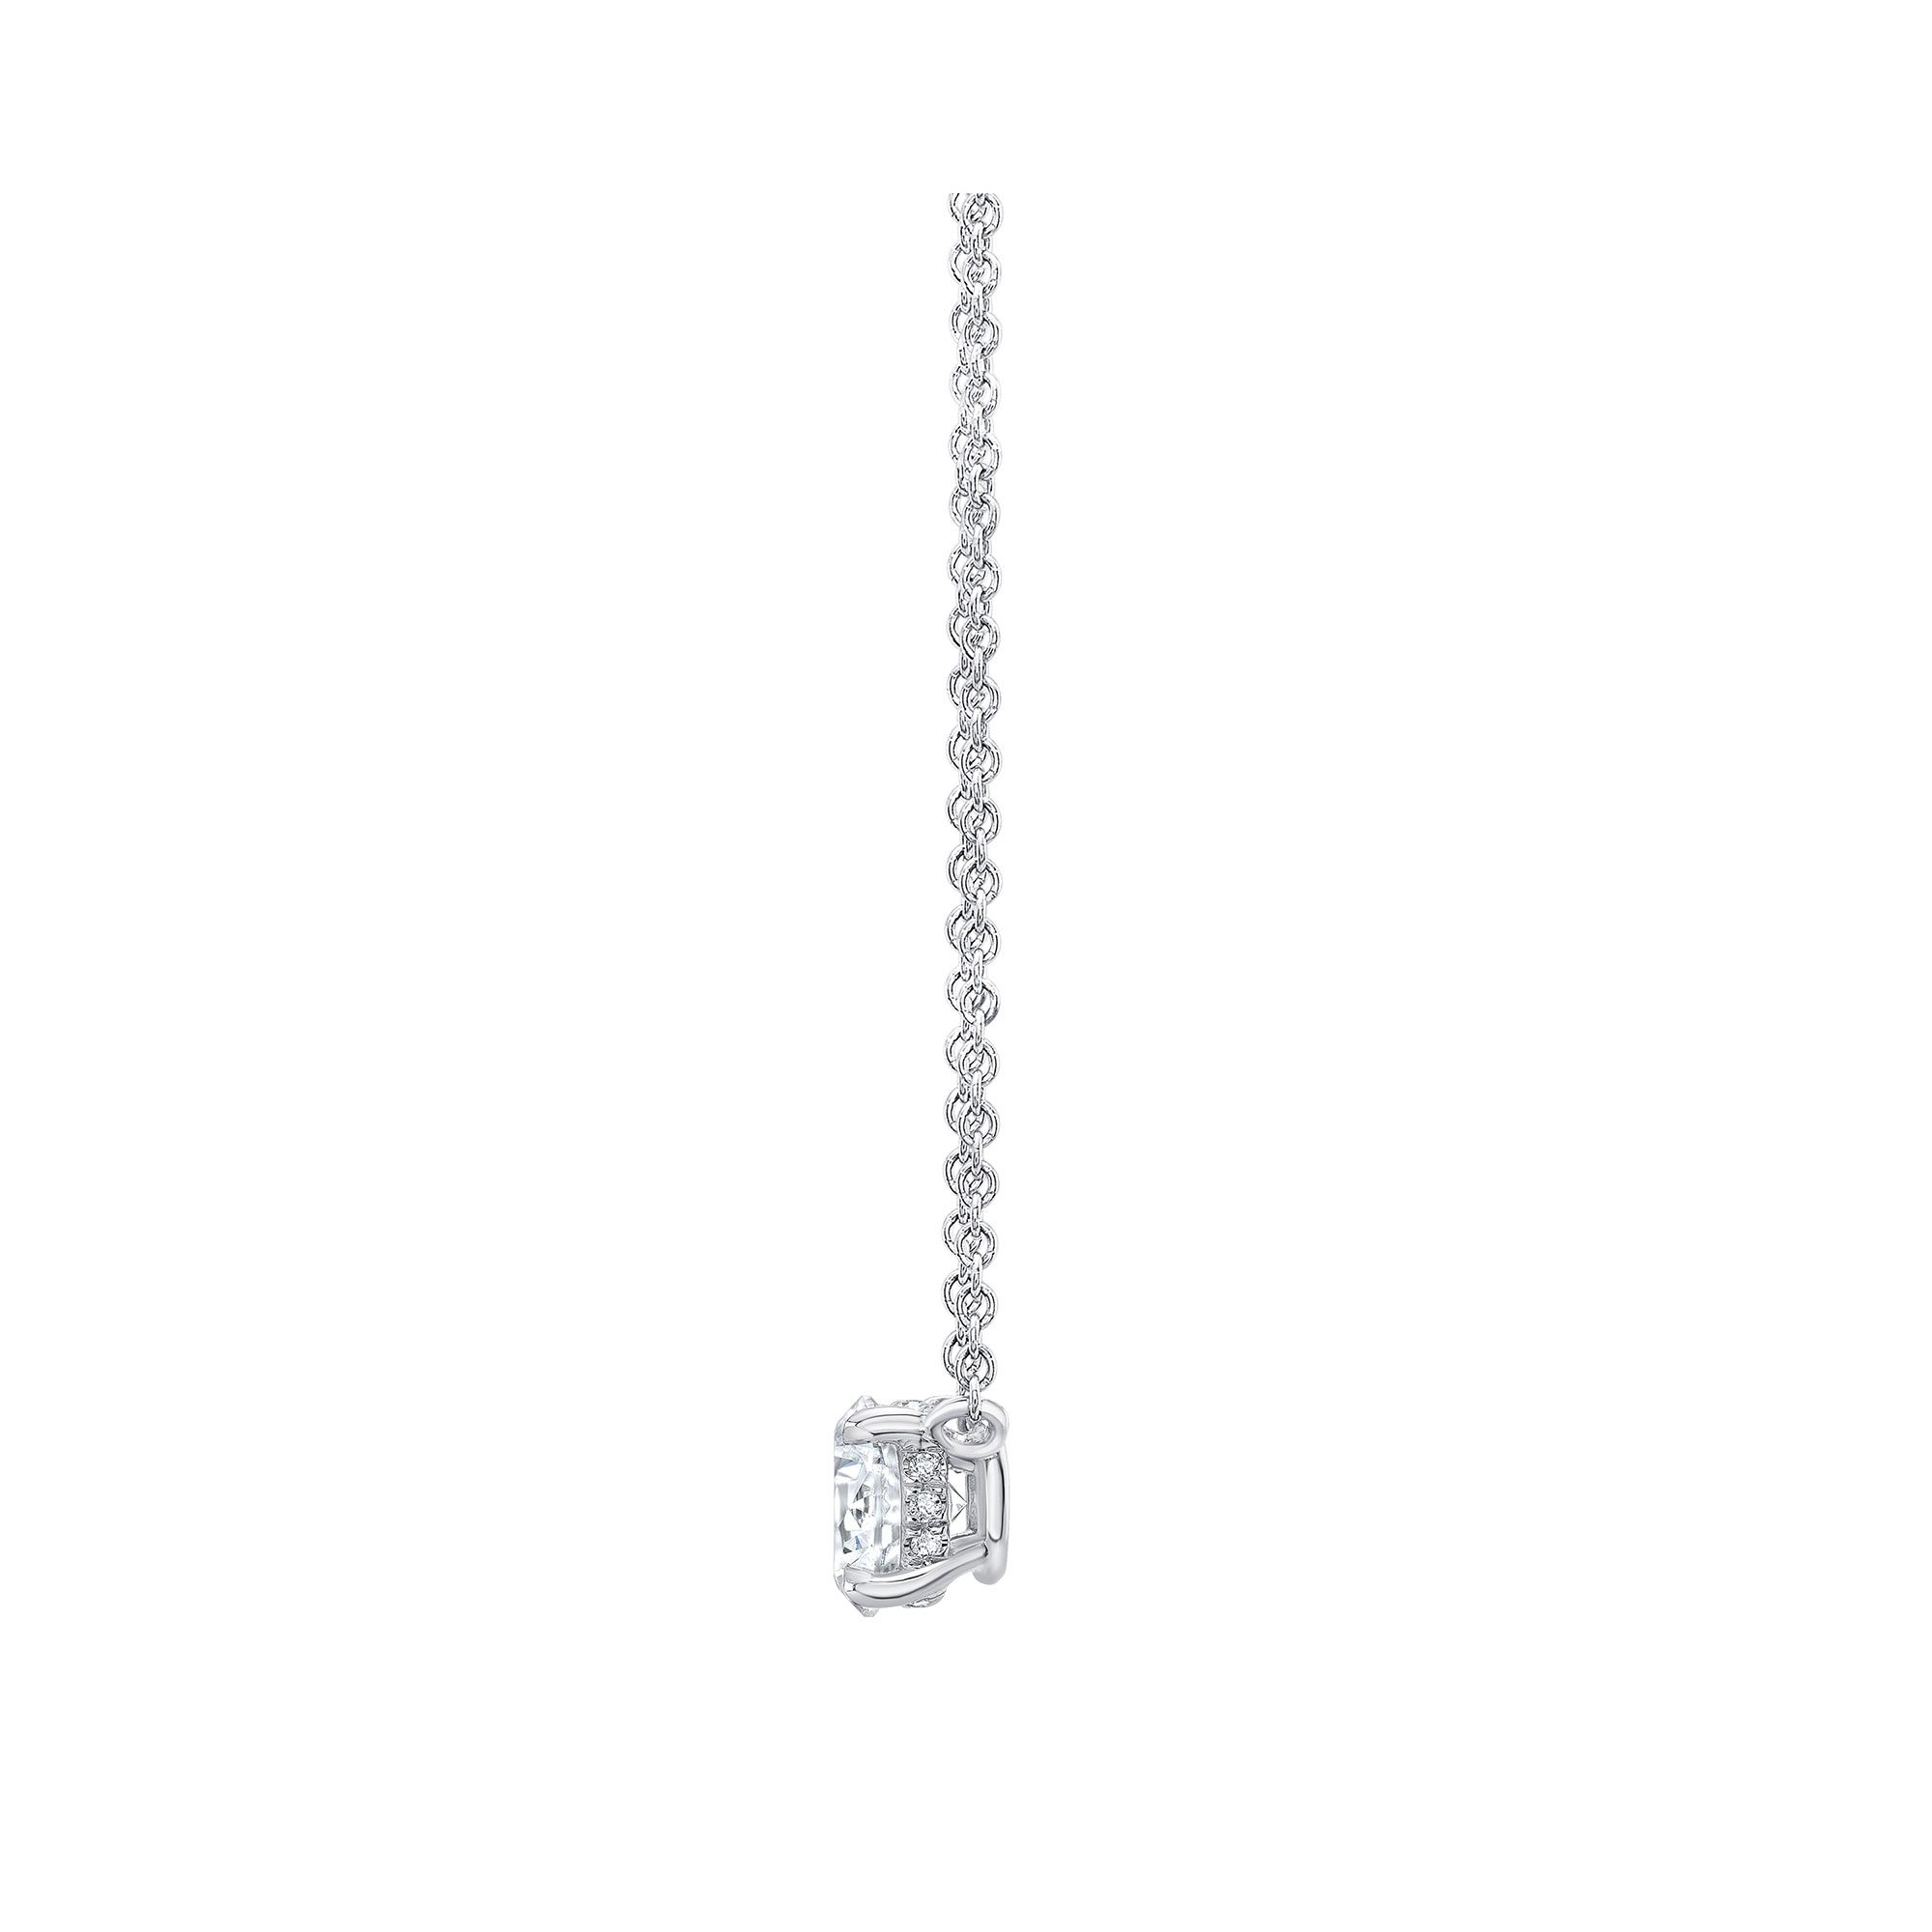 Marie Round Brilliant 1.5 Carat Lab Grown Diamond Necklace Side View in White Gold